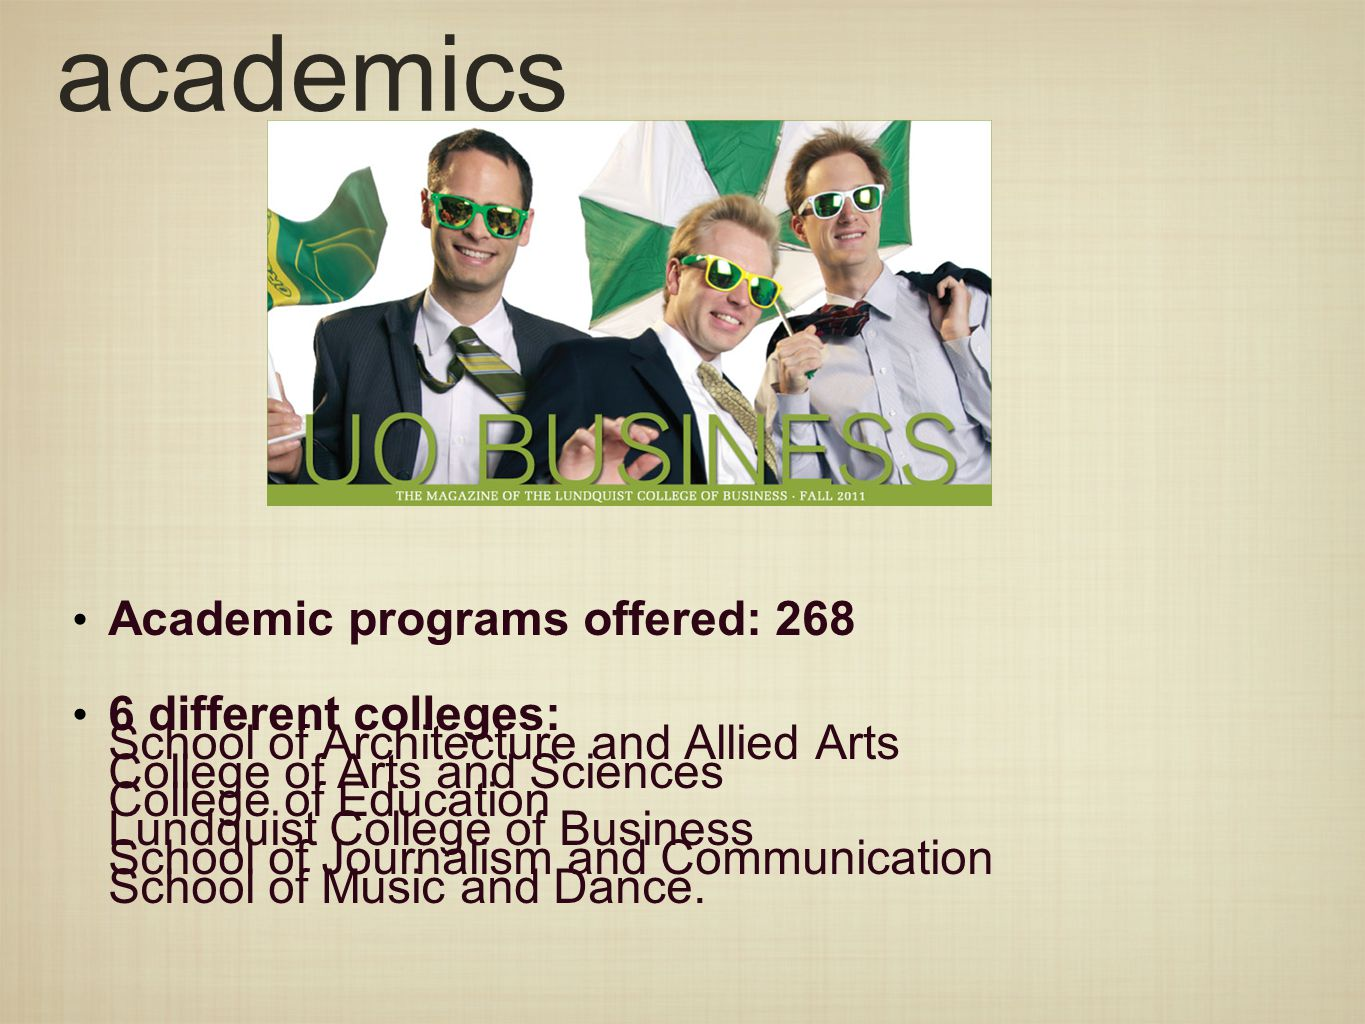 academics Academic programs offered: 268 6 different colleges: School of Architecture and Allied Arts College of Arts and Sciences College of Educatio